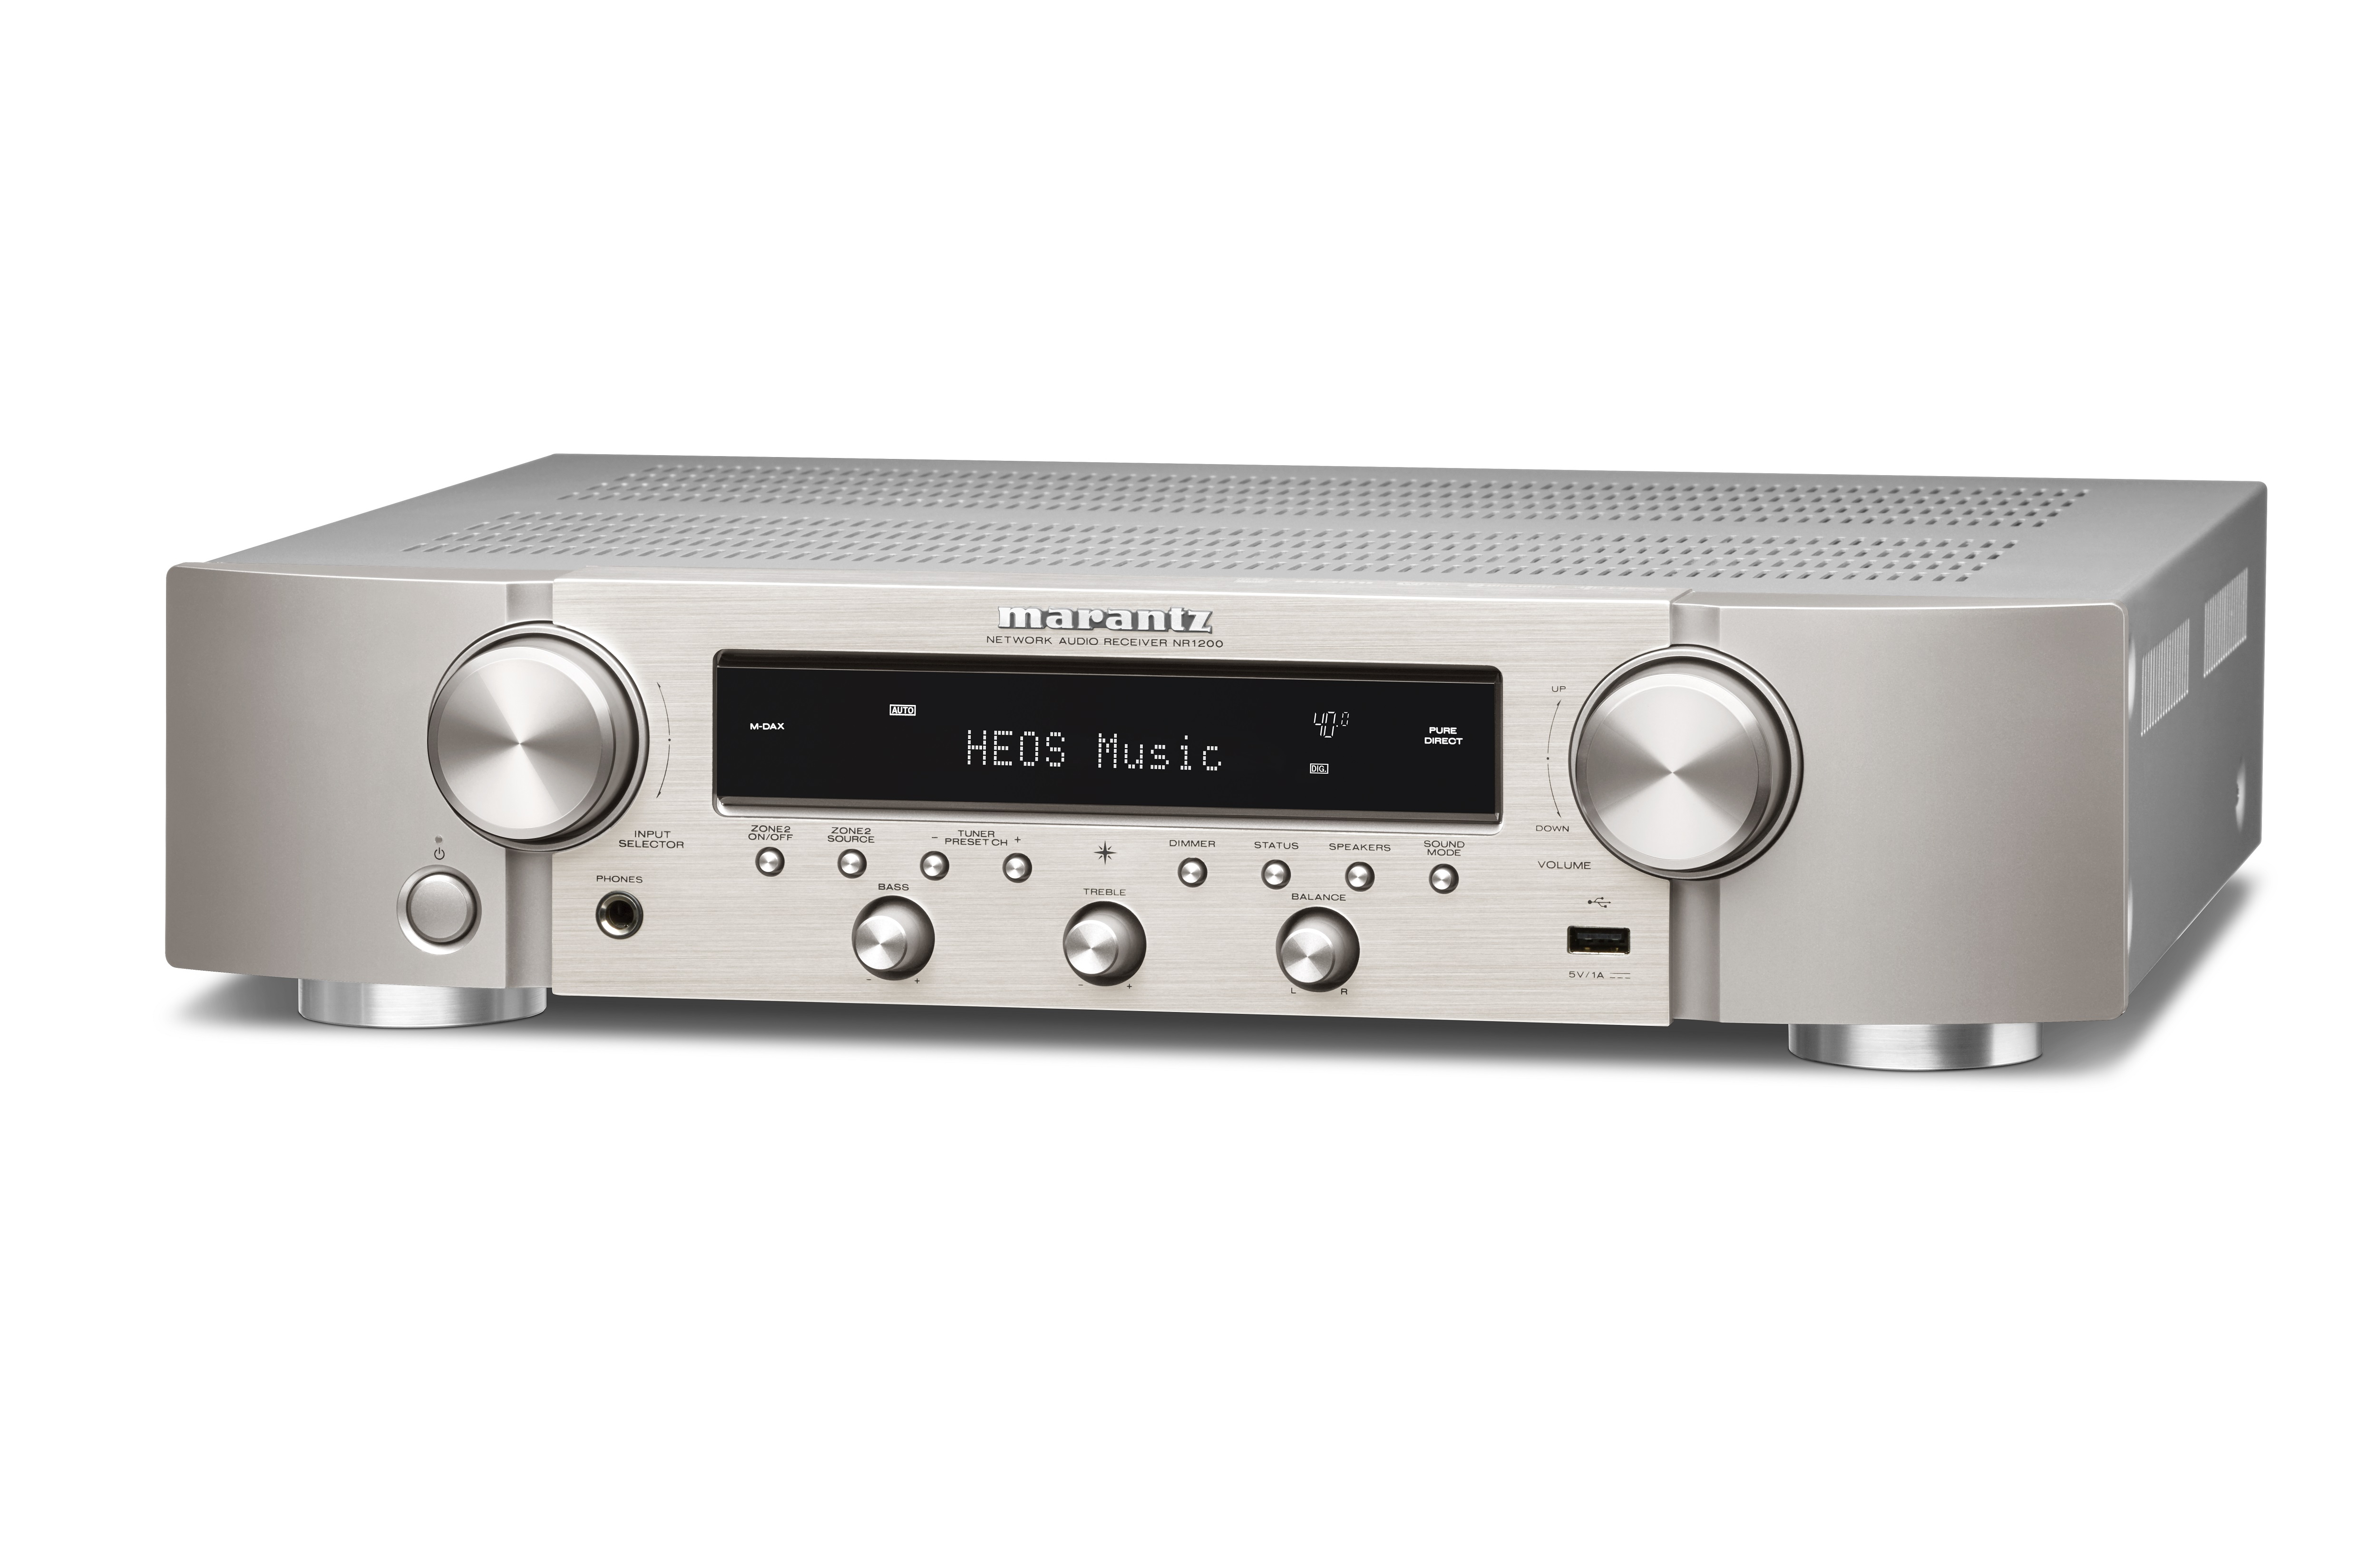 Marantz NR1200 is a feature-packed slimline stereo receiver